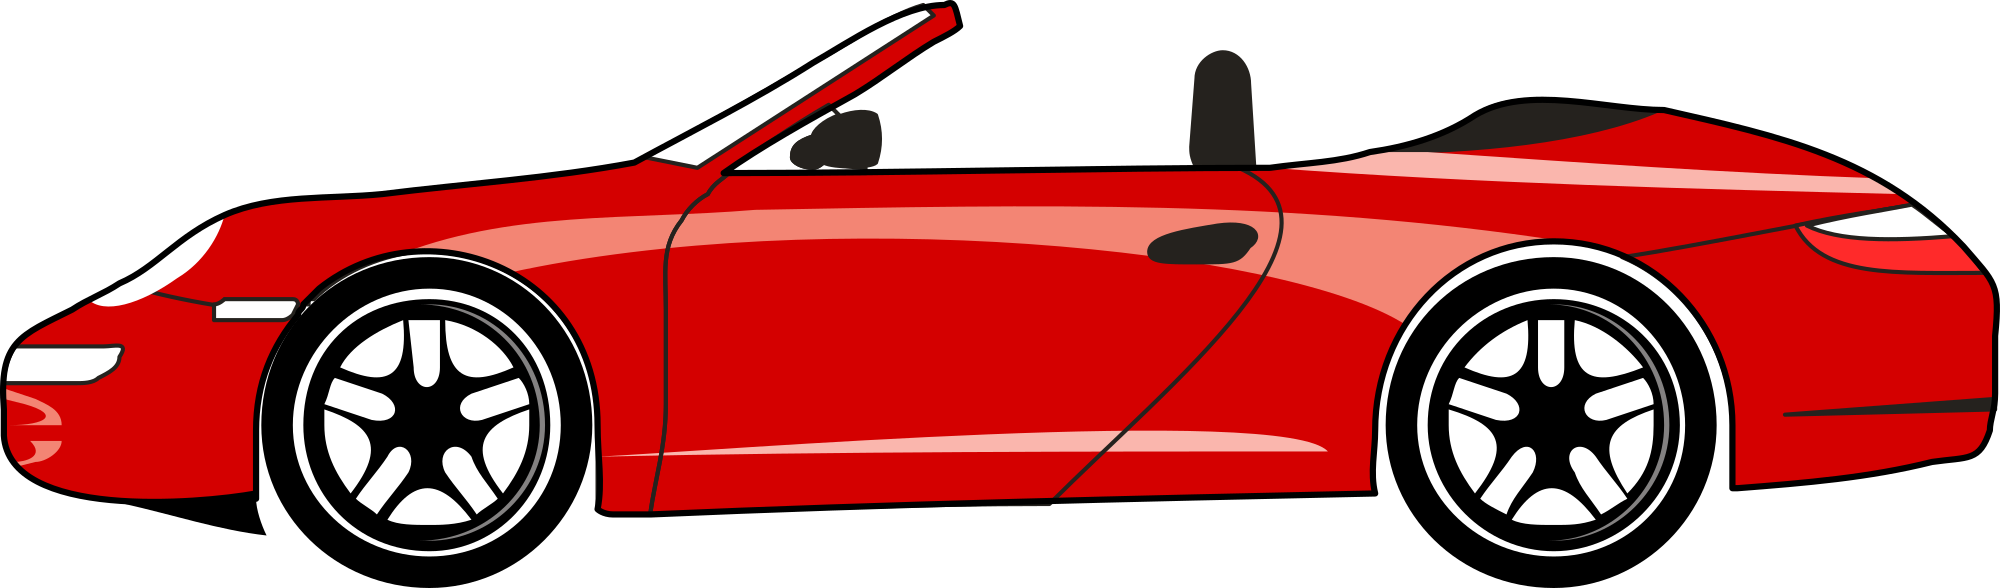 Free red sports car clipart clipart and vector image.